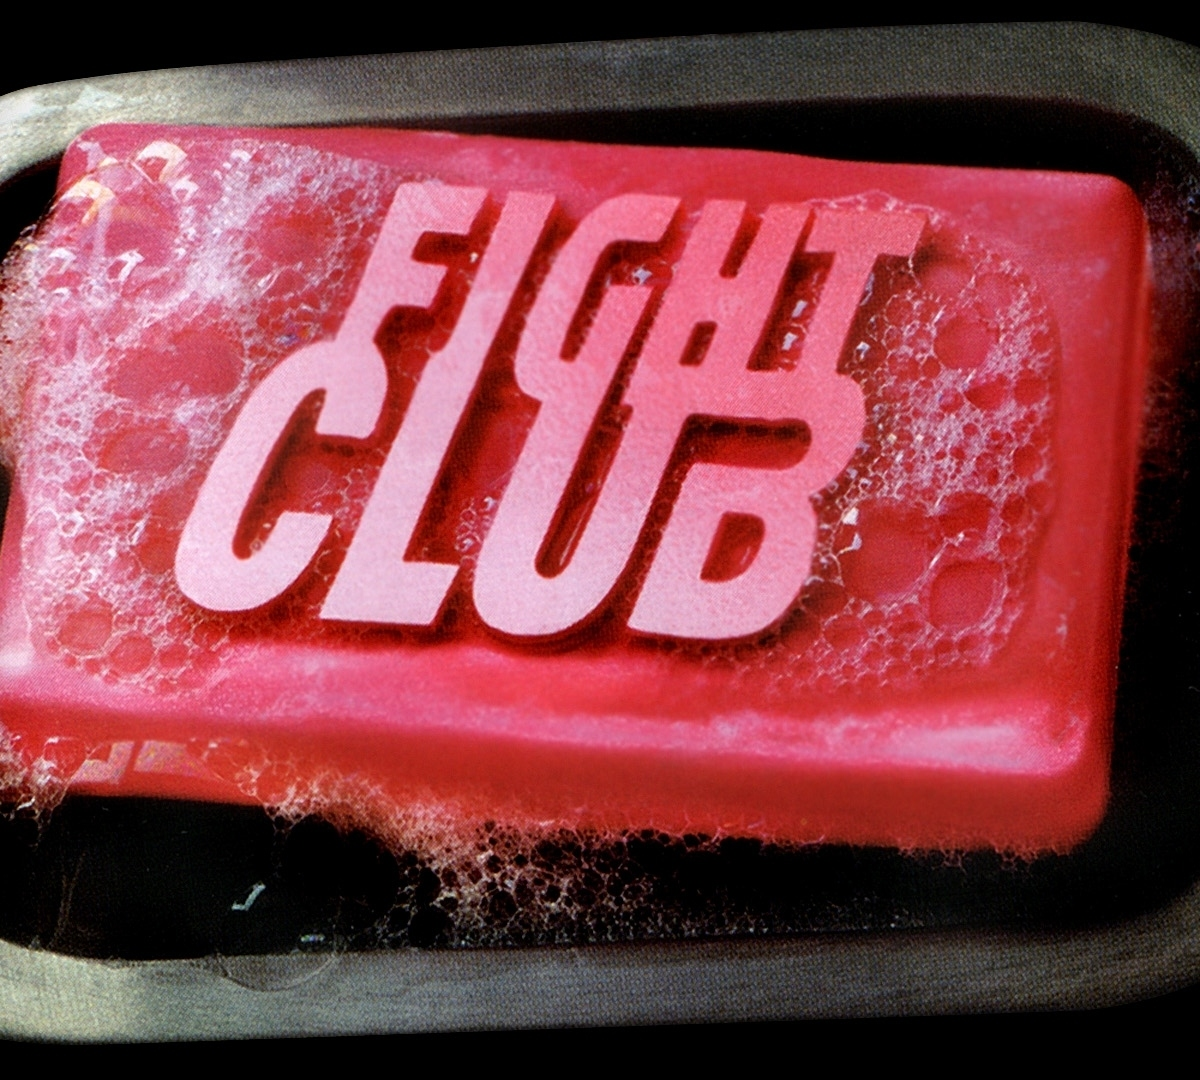 Essay on fight club book